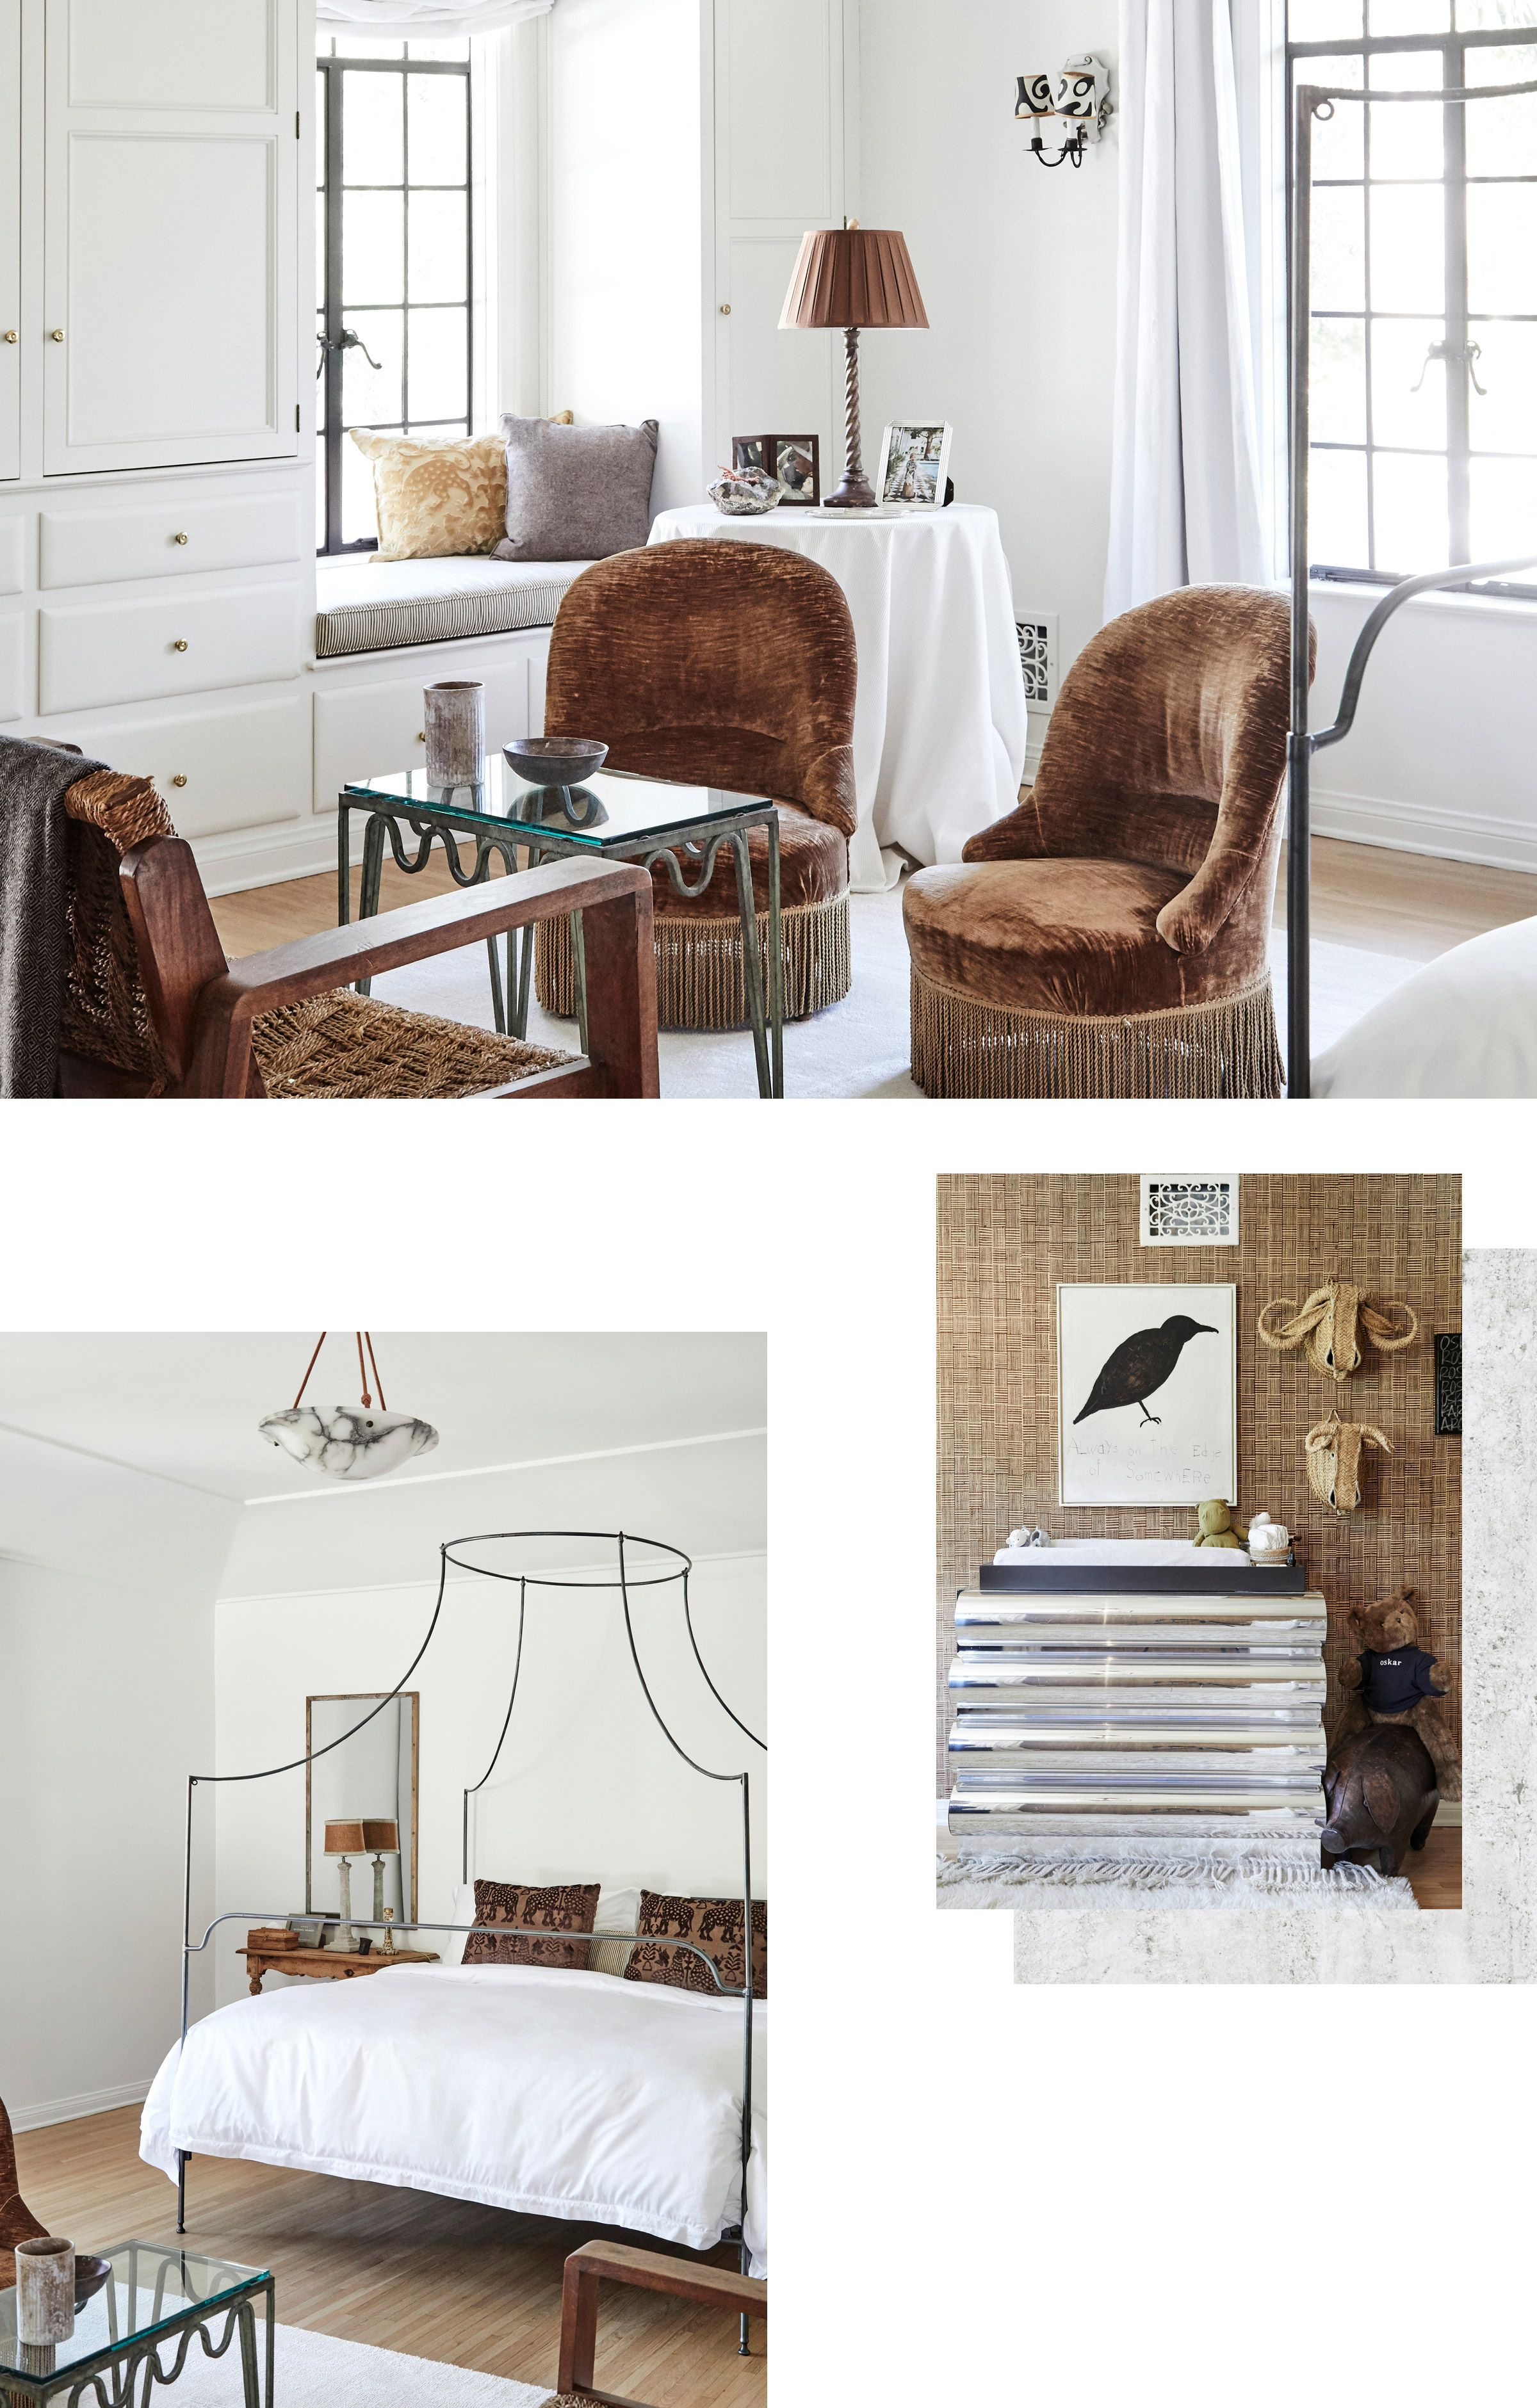 Inside Nate Berkus And Jeremiah Brent's Family Home In L.a (View 9 of 20)